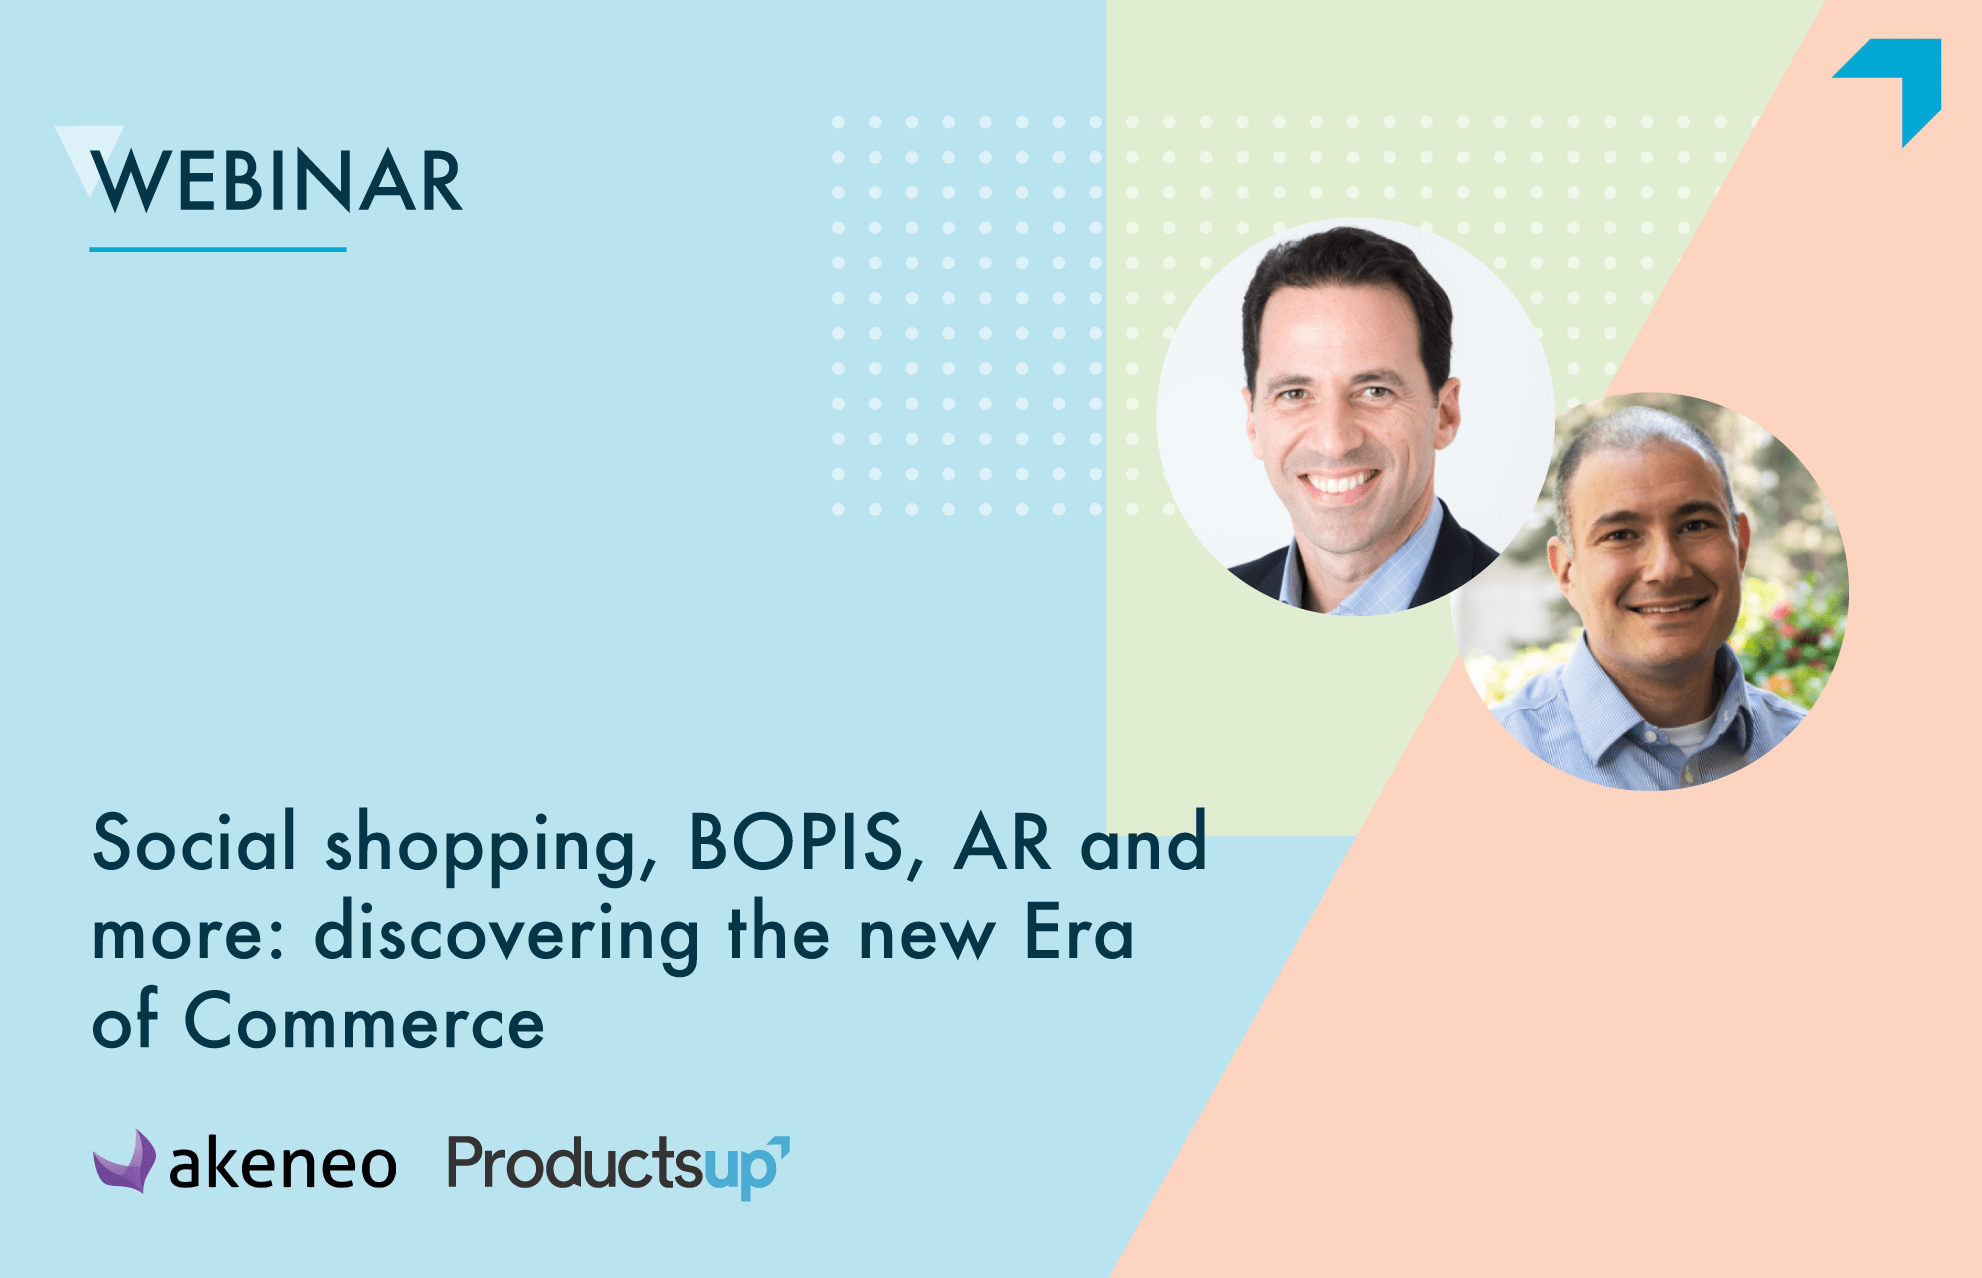 Social shopping, BOPIS, AR, and more: Discovering the new era of commerce featuring Akeneo and Productsup